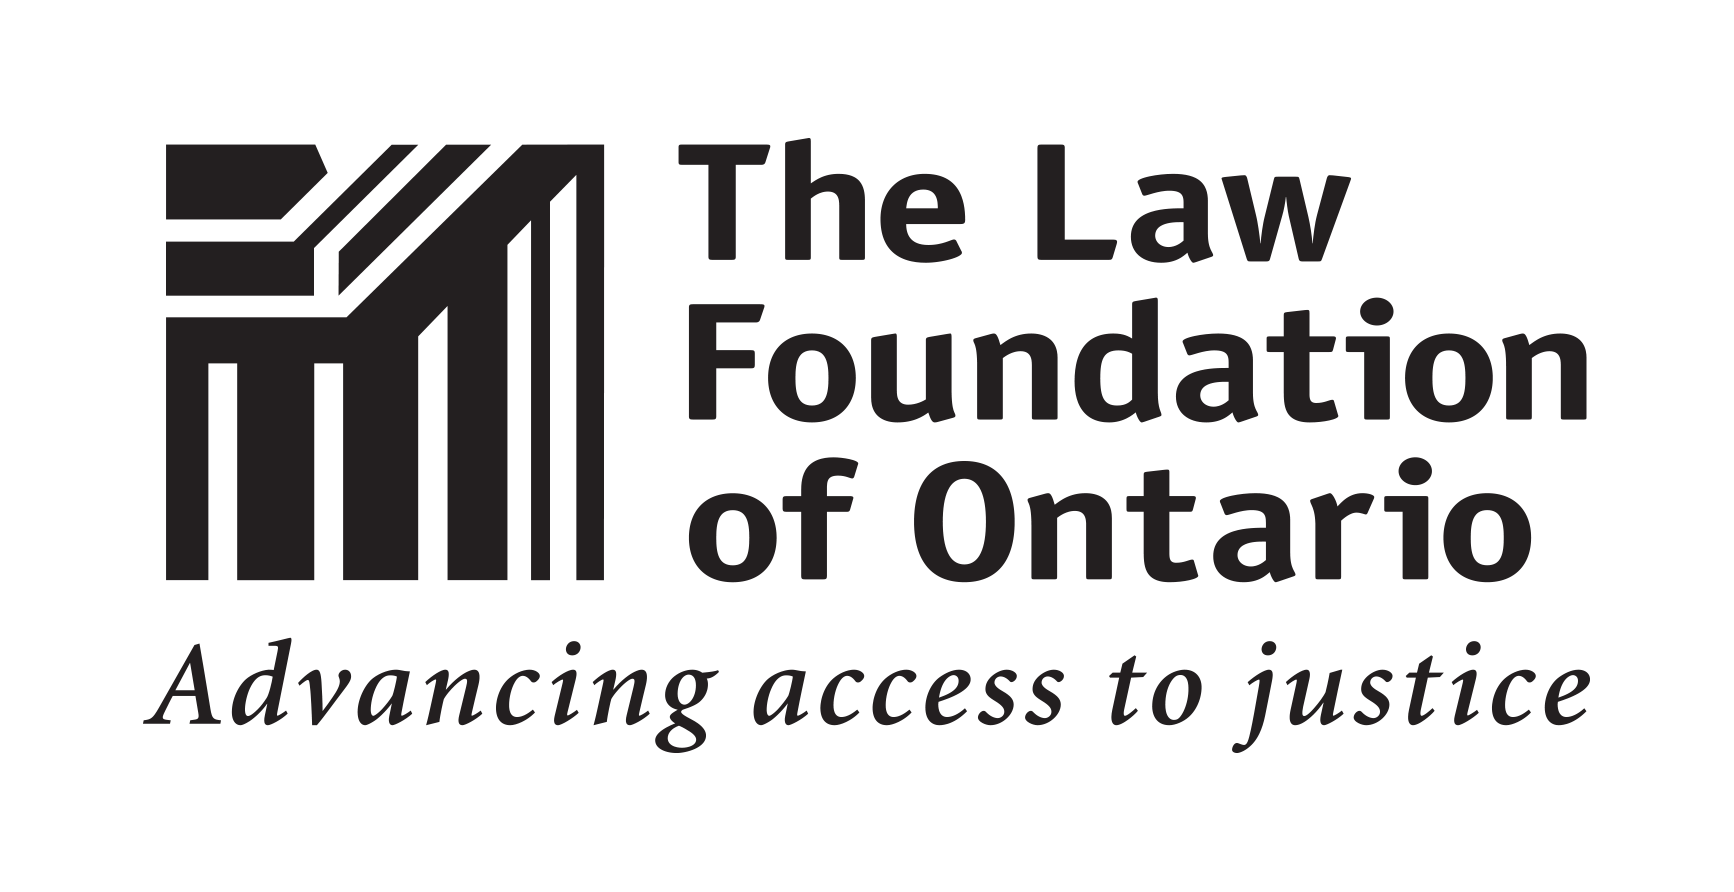 Logo of the Law Federation of Ontario